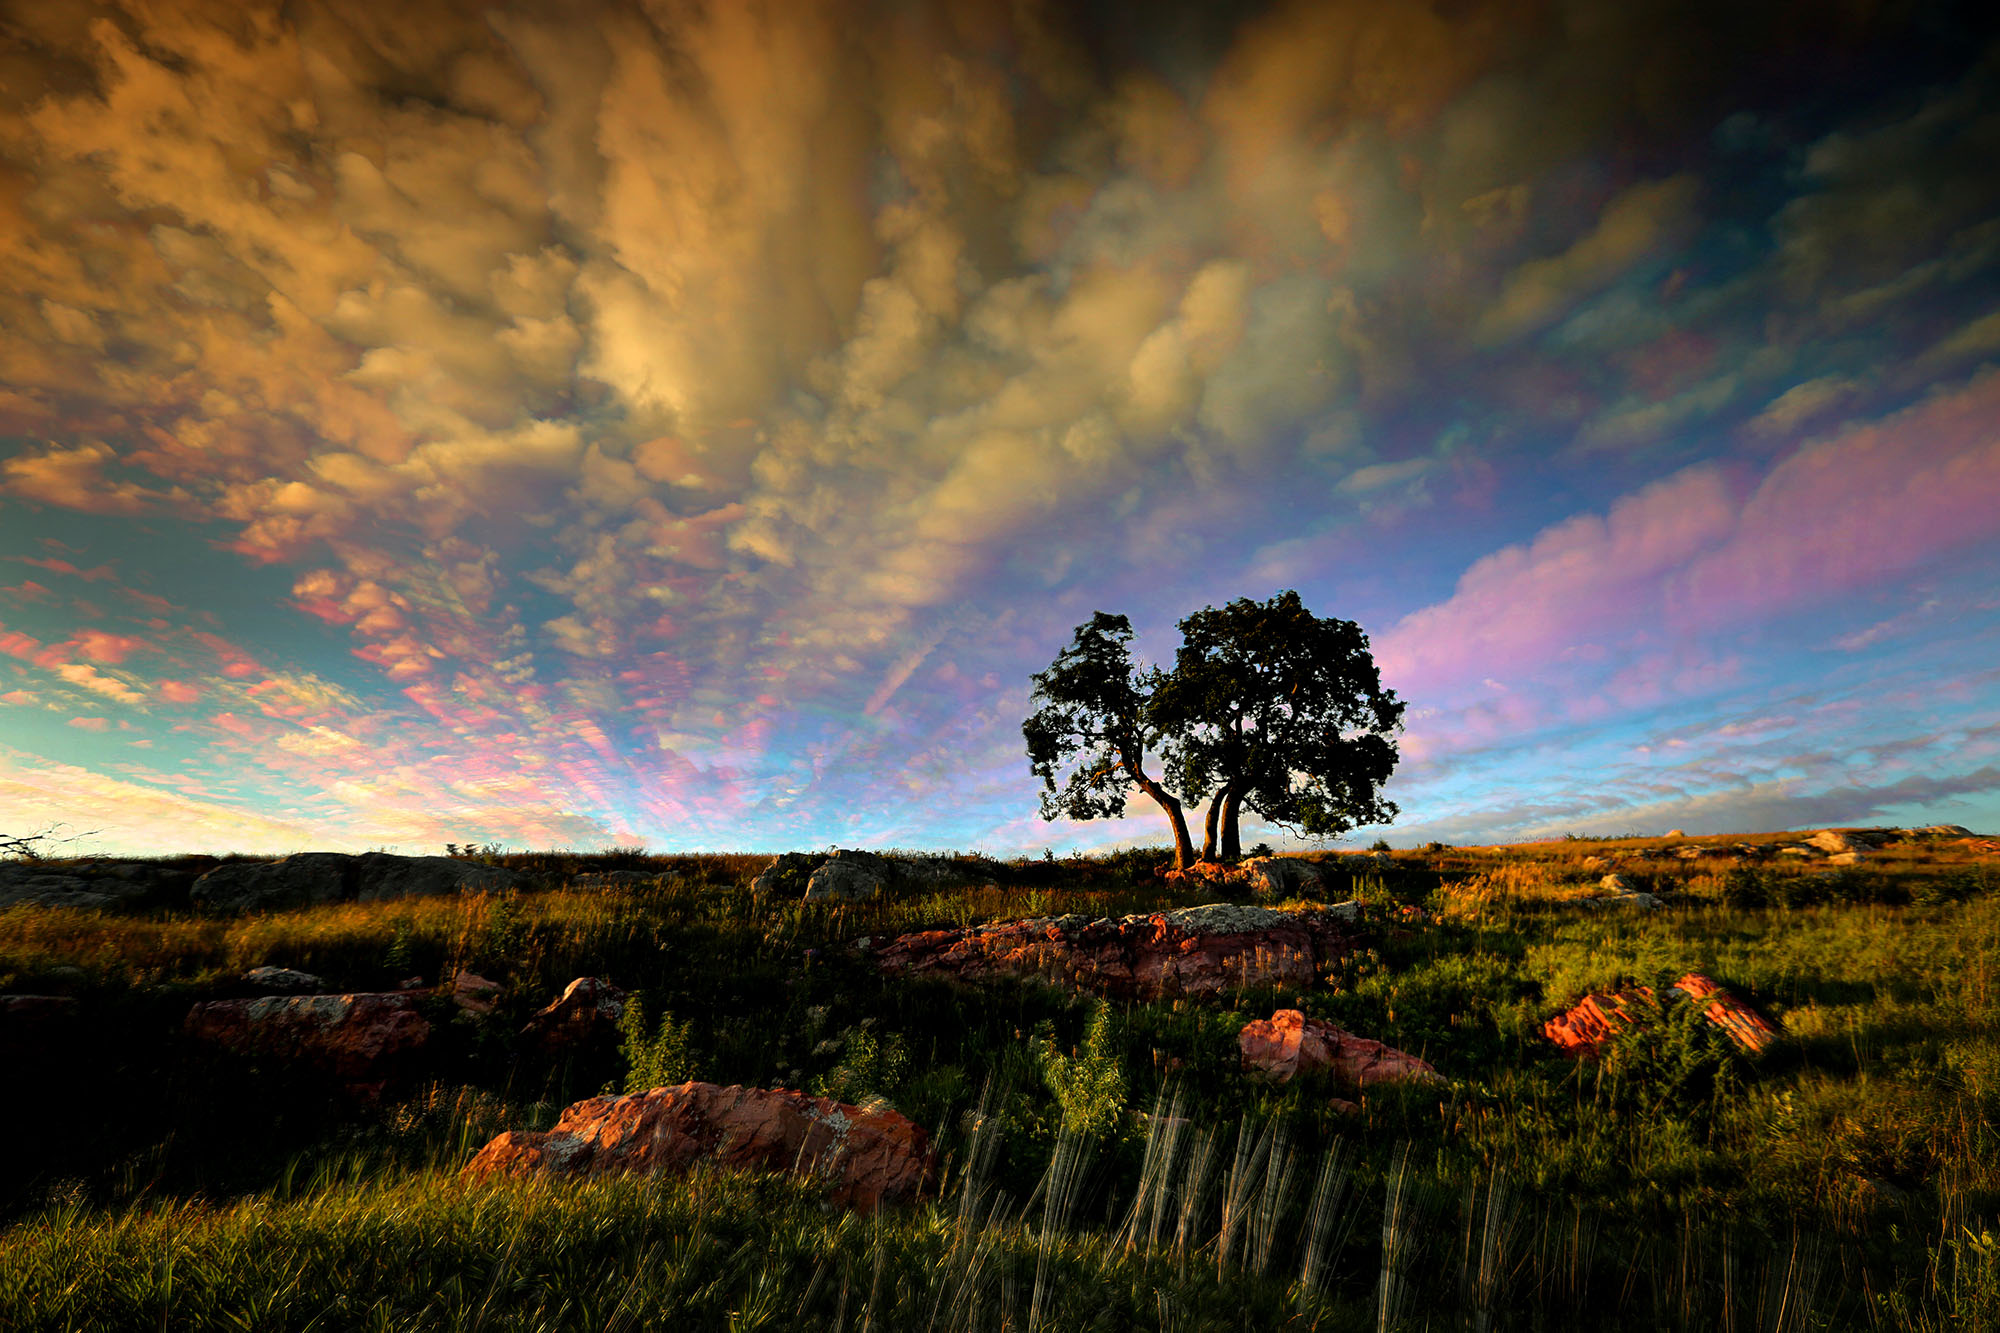 Summertime prairie outside of Luverne, Minnesota by Brian Peterson